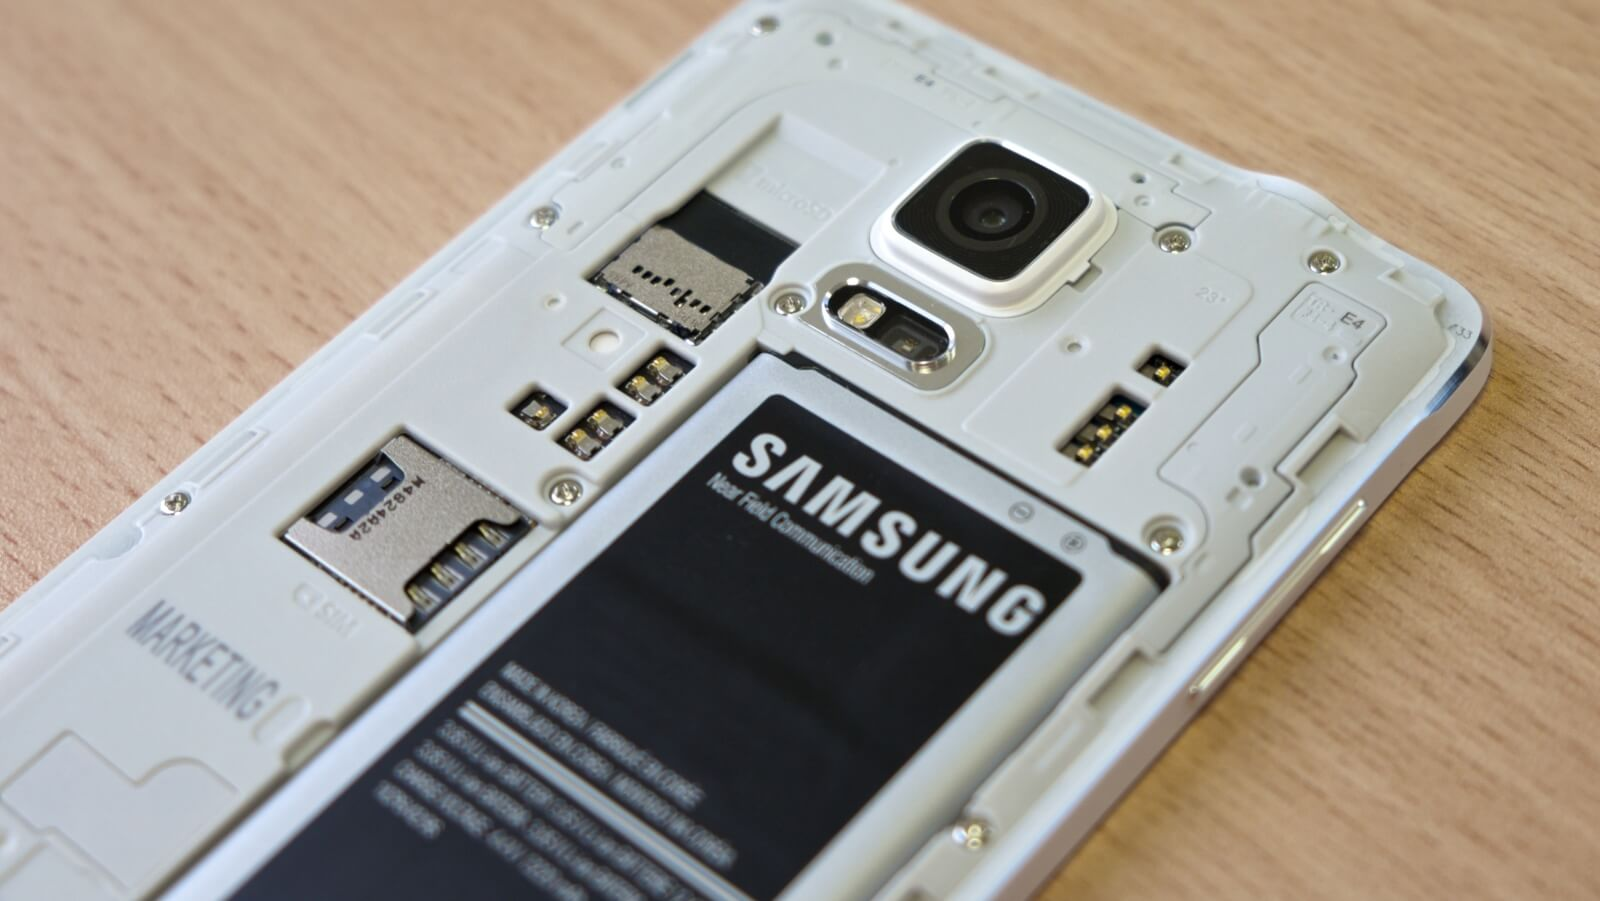 Samsung rumored to be readying graphene batteries that can fully charge in under half an hour